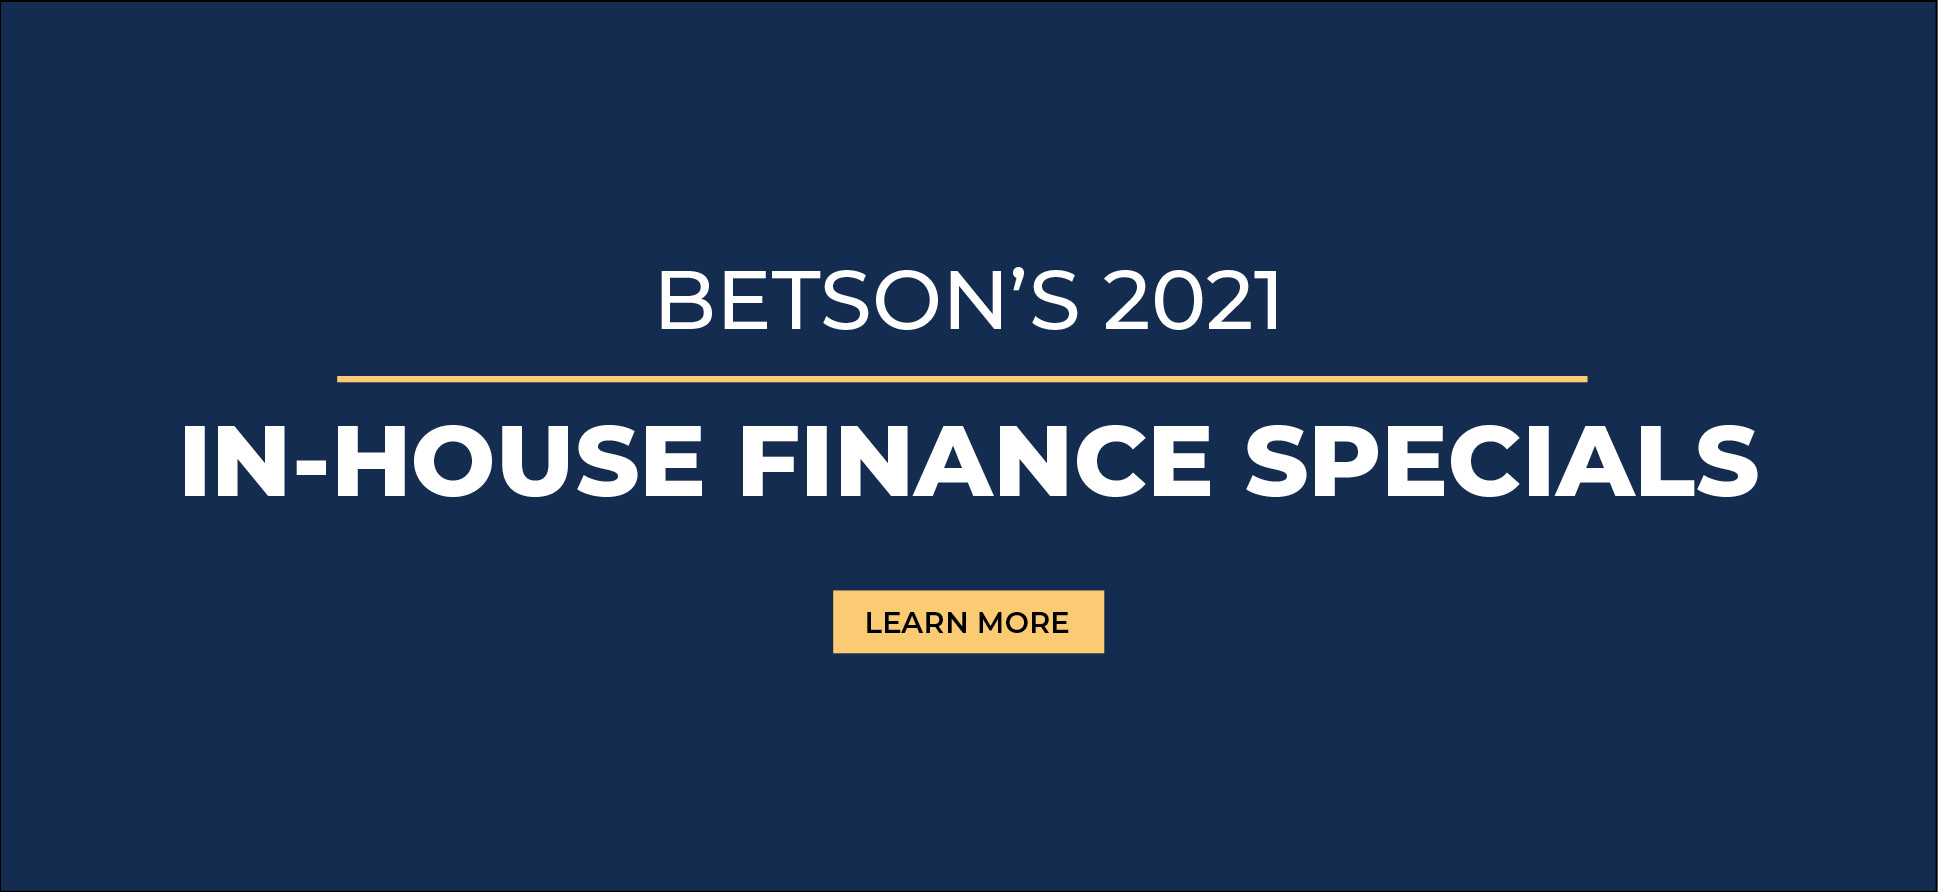 Betson's 2021 In-House Finance Specials